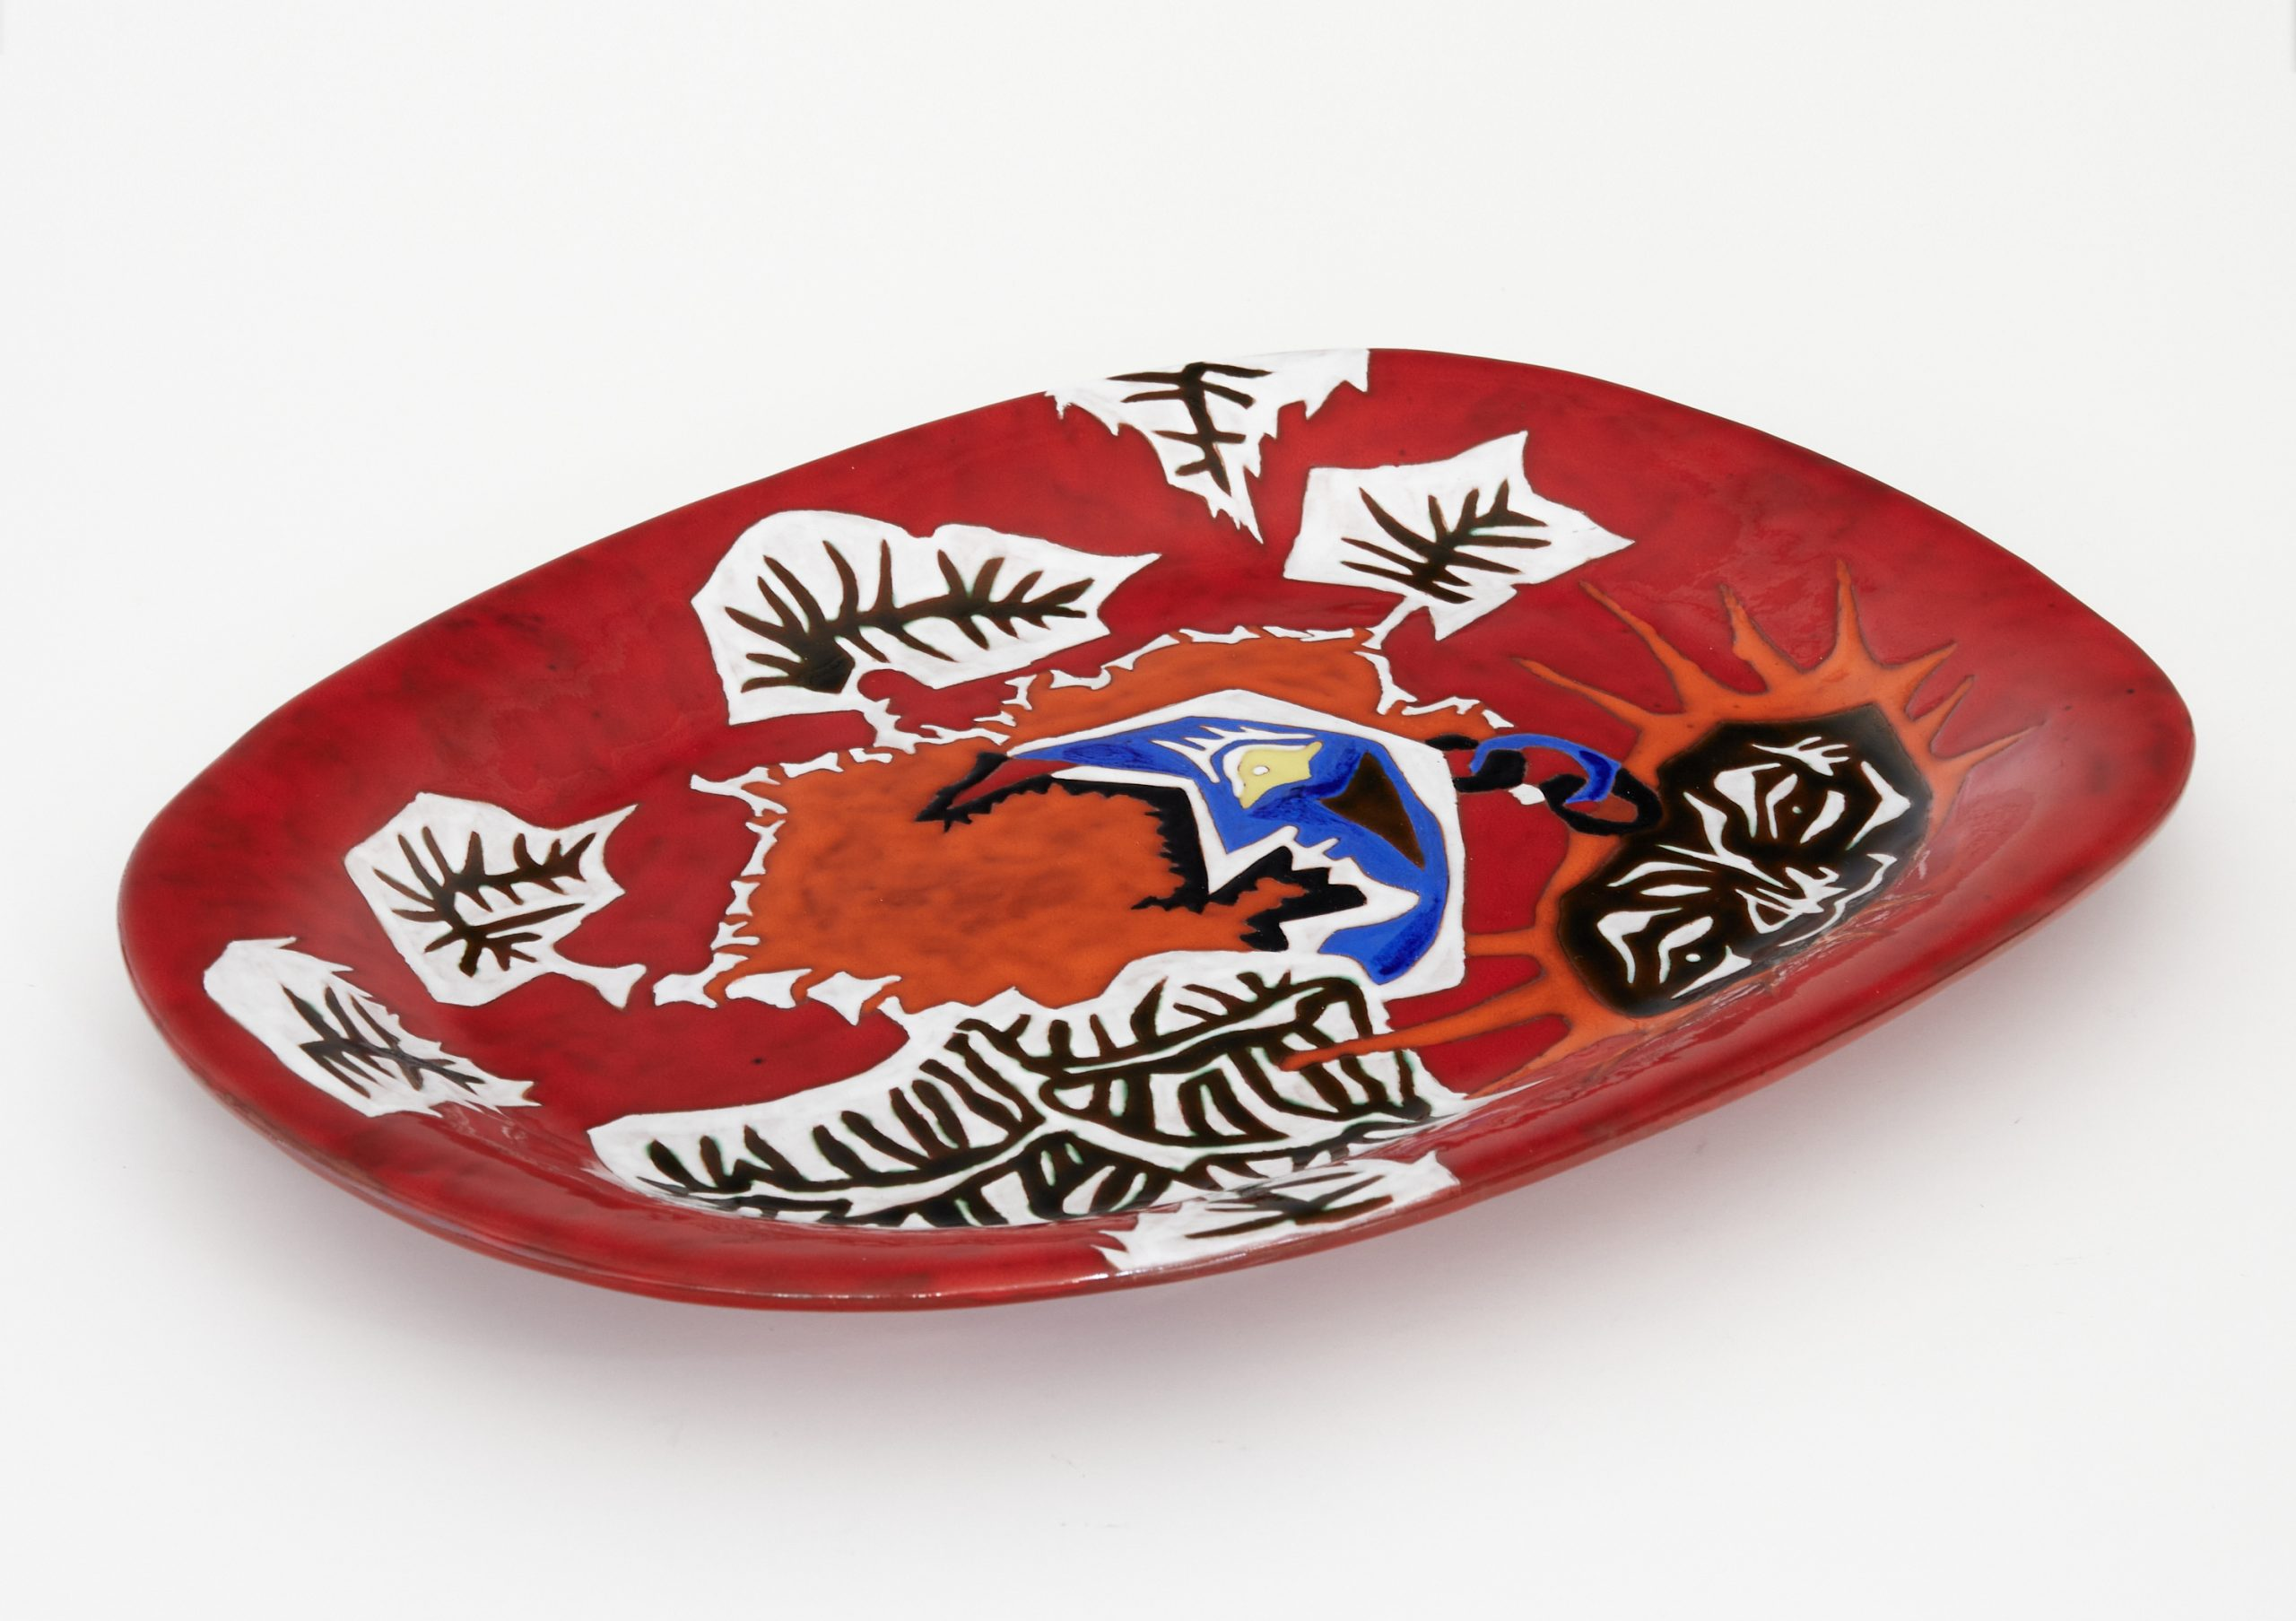 red-glazed-ceramic-dish-by-jean-lurcat-for-atelier-sant-vicens-marked-1-50-image-01